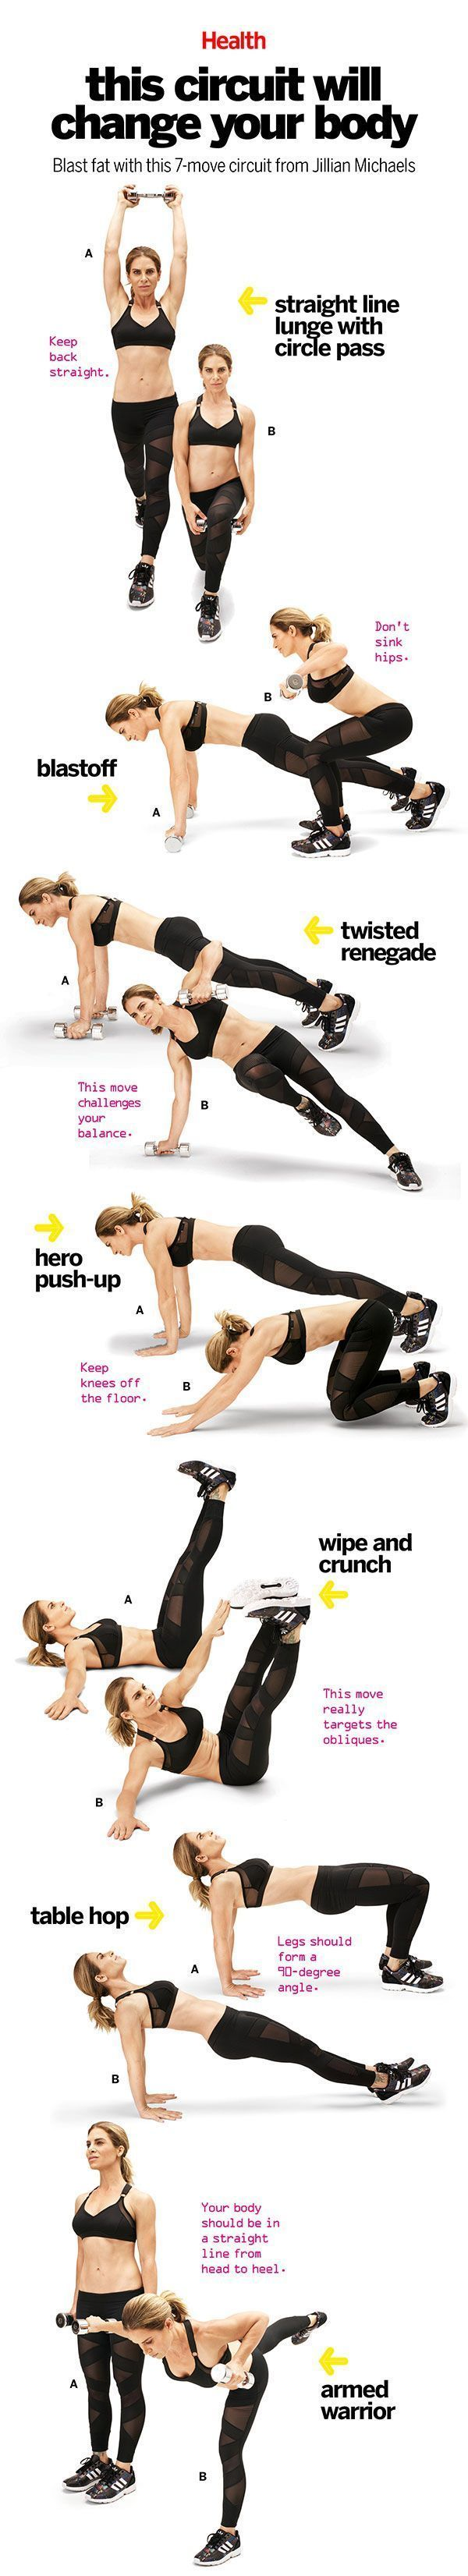 Circuit workout for that amazing body.  #fitness #circuit #motivation #body #workout #health